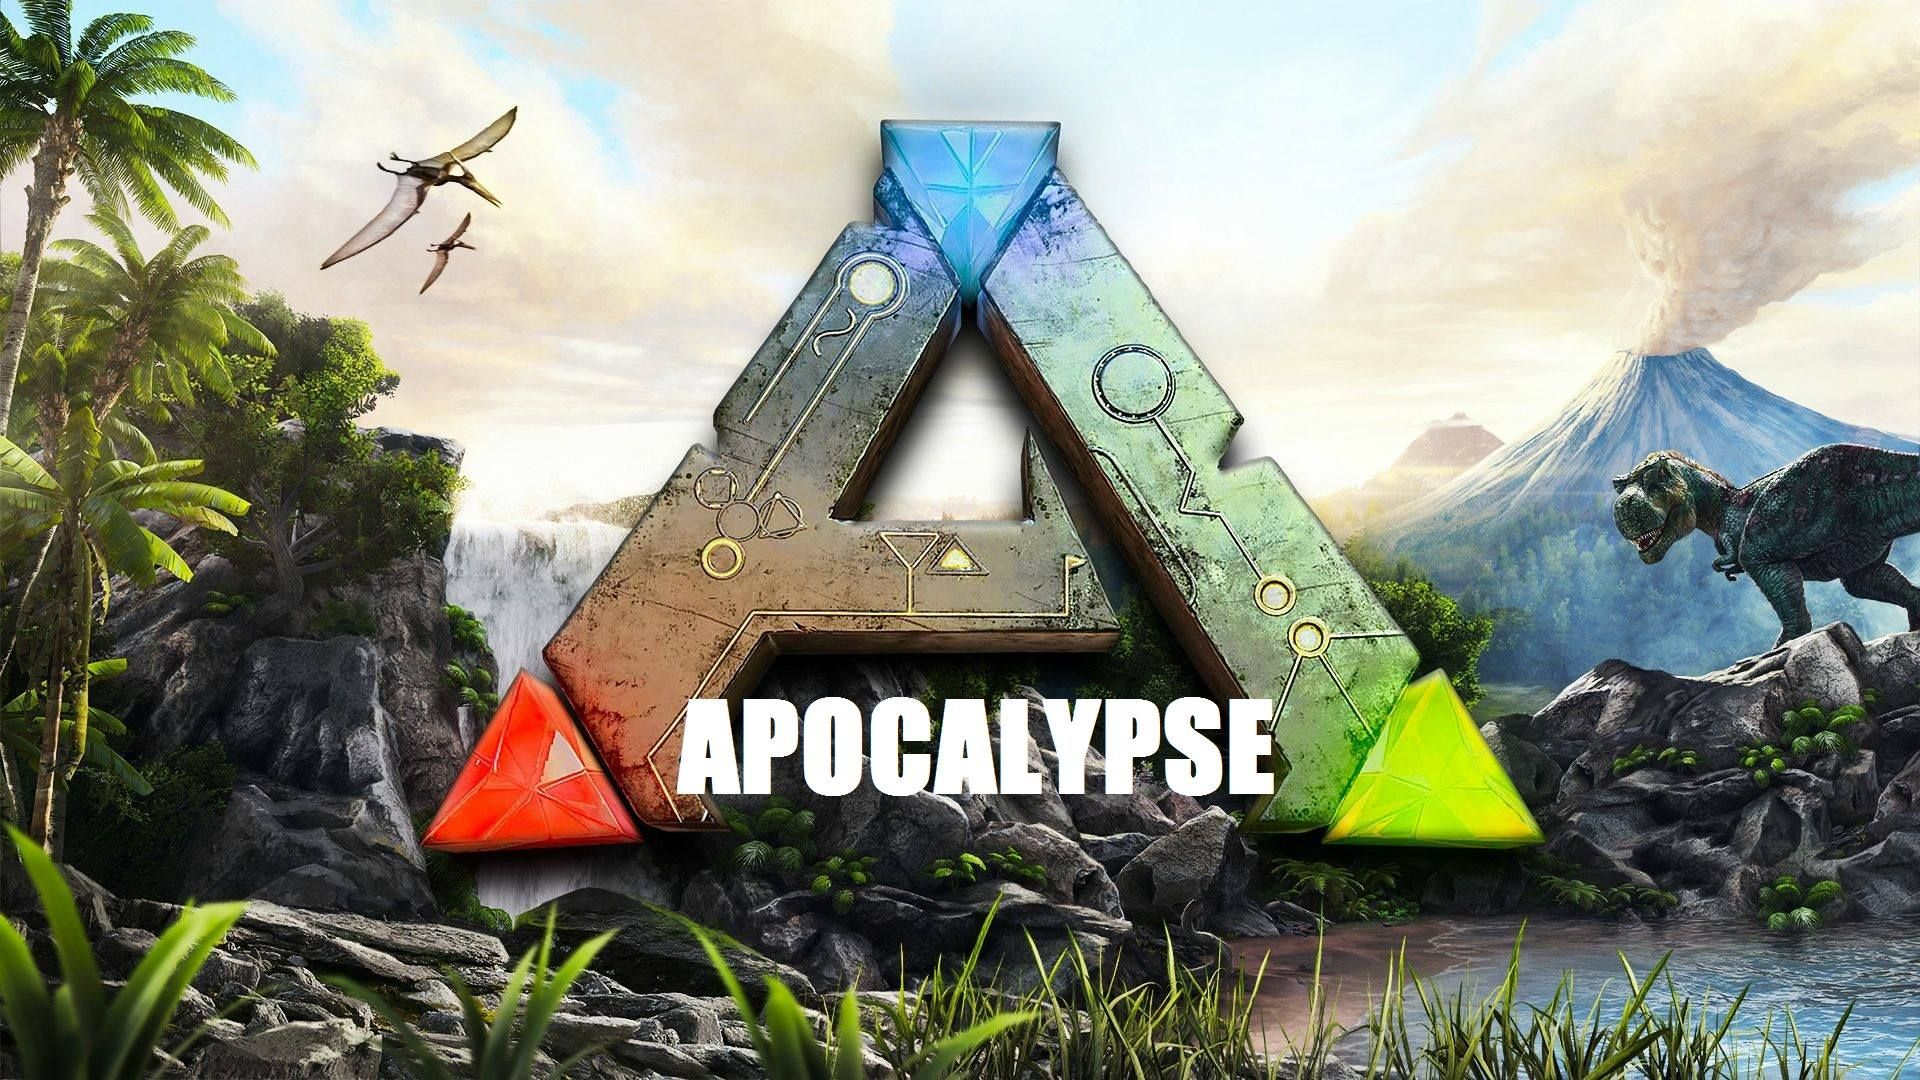 Pin by RedRinc on ARK Survival Evolved. Evolve